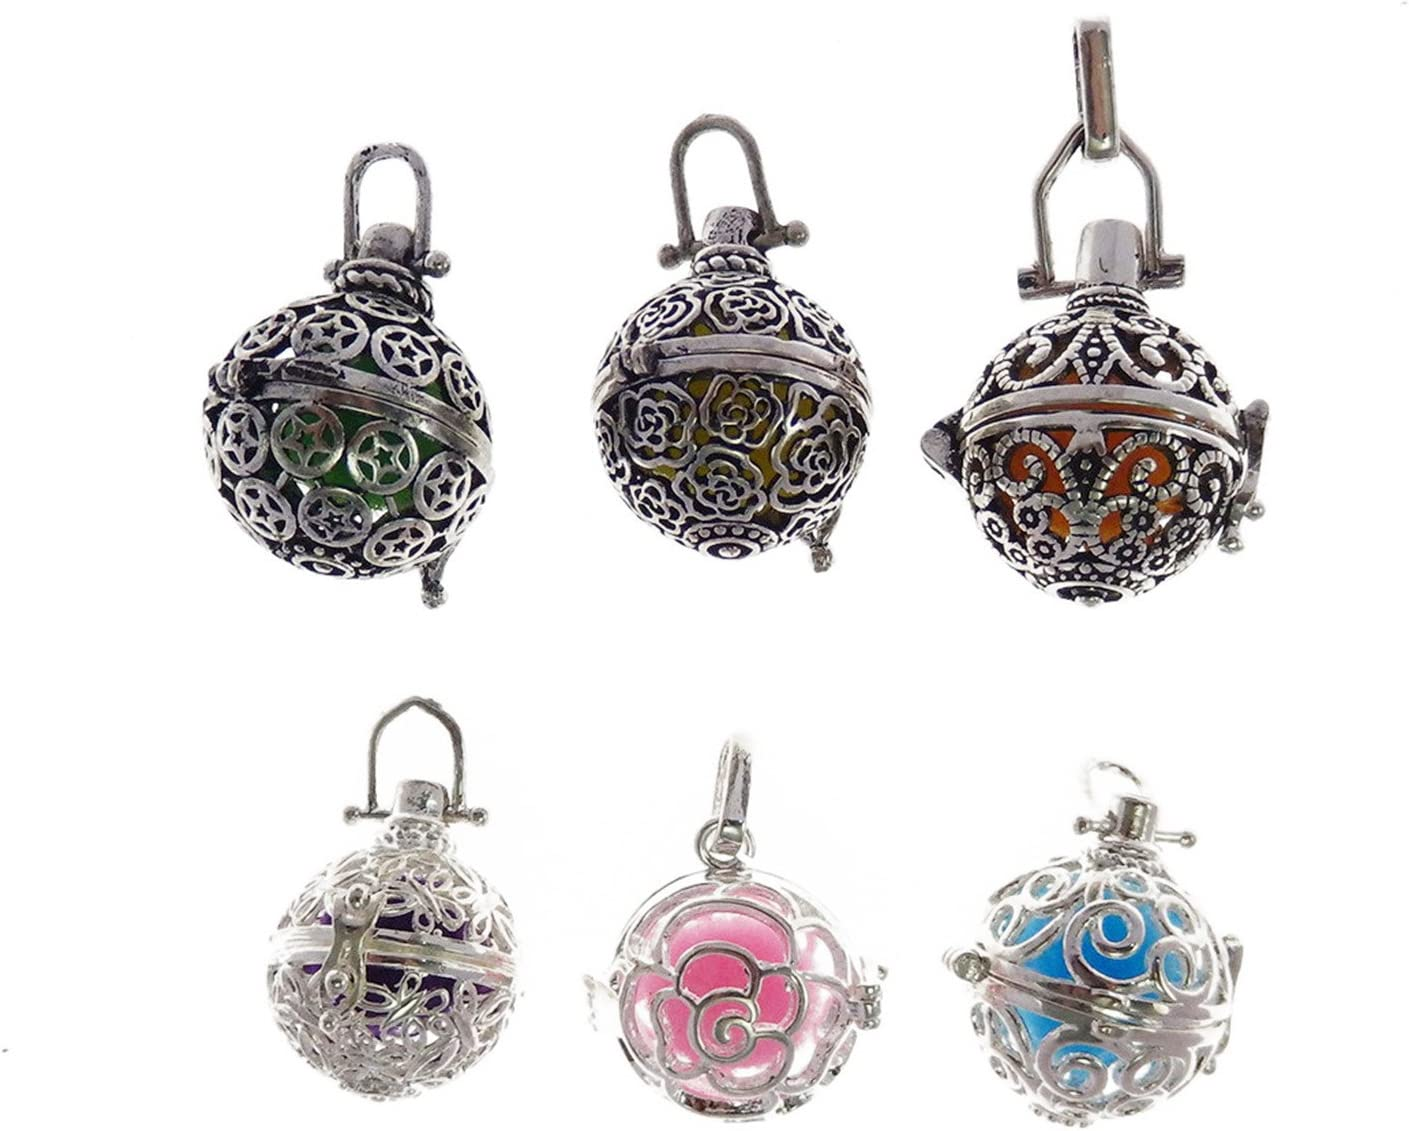 GraceAngie 6Pcs Mixed Antique Silver Diffuser Cage Locket Pendant Charms with Lava Beads for Aromatherapy Essential Oil Necklace Bracelet Jewellery Making